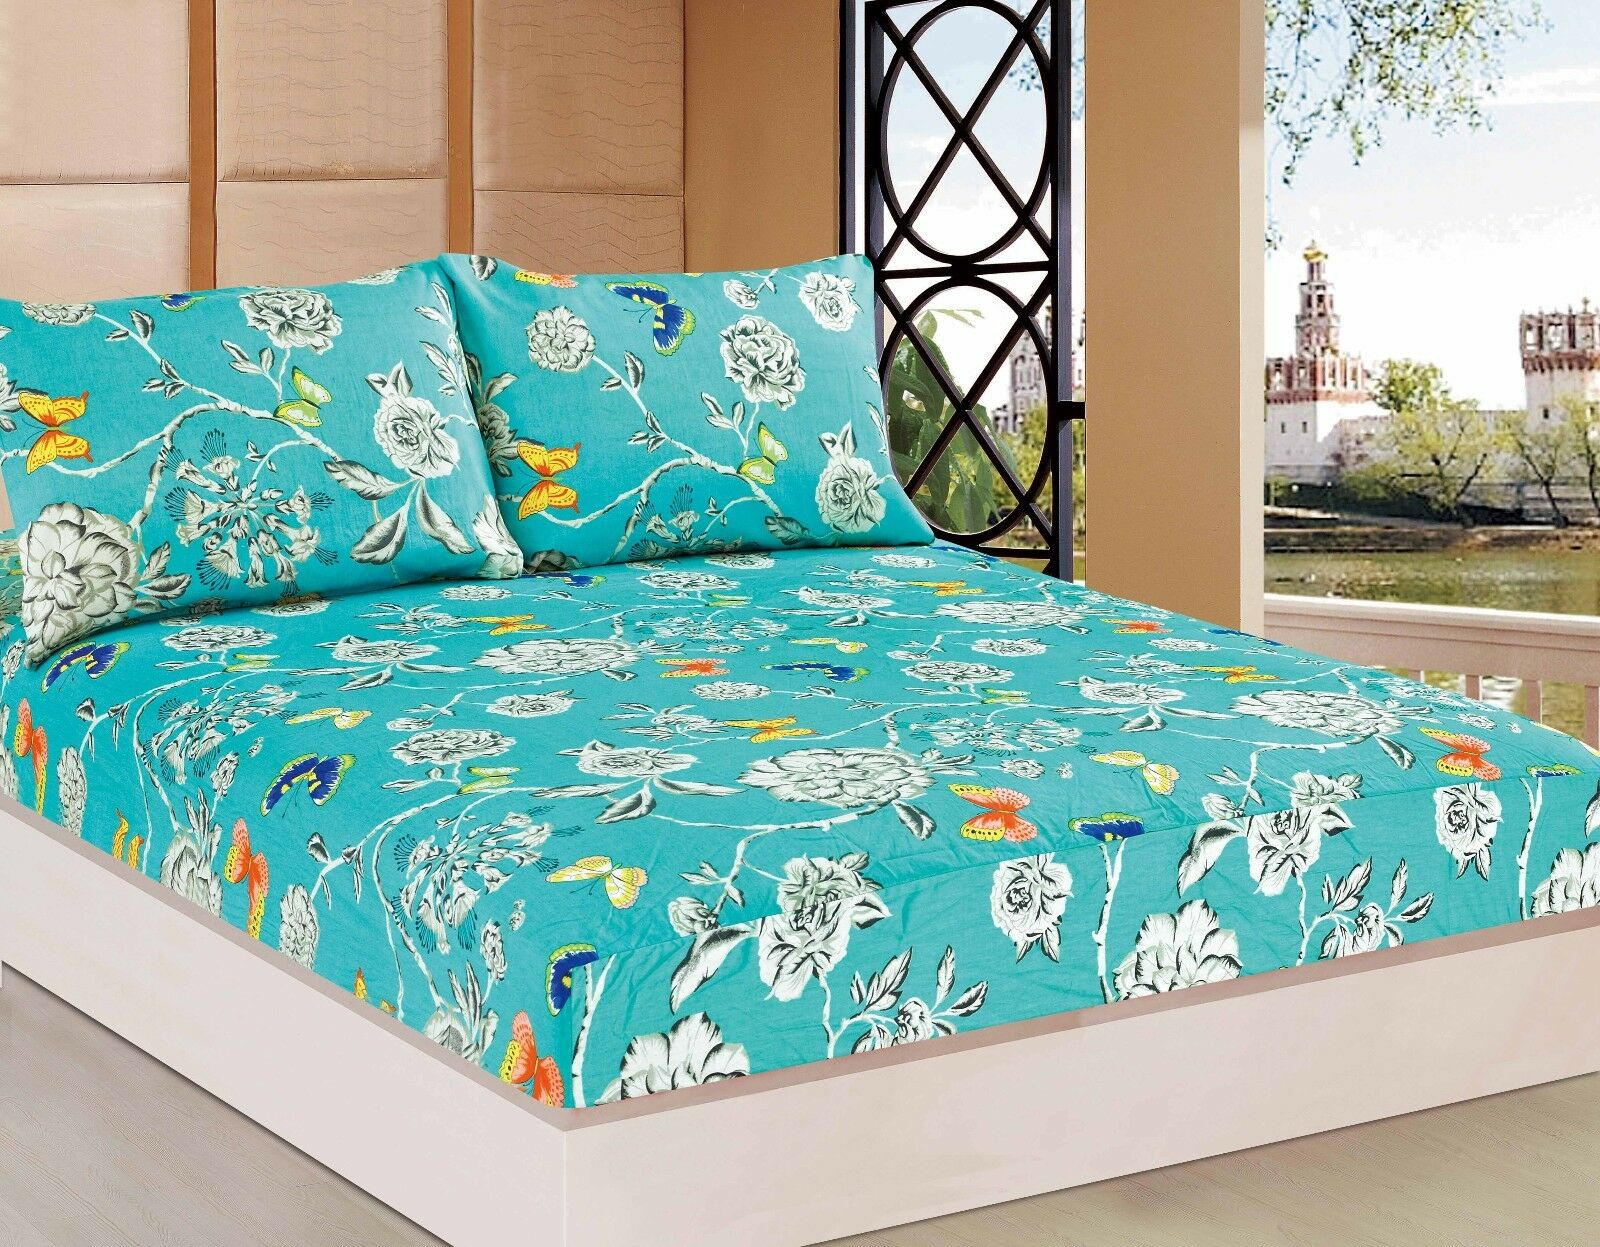 Tache 2-3 PC Butterfly Wonderland Aqua Blau Floral Farbeful Fitted Sheet Only